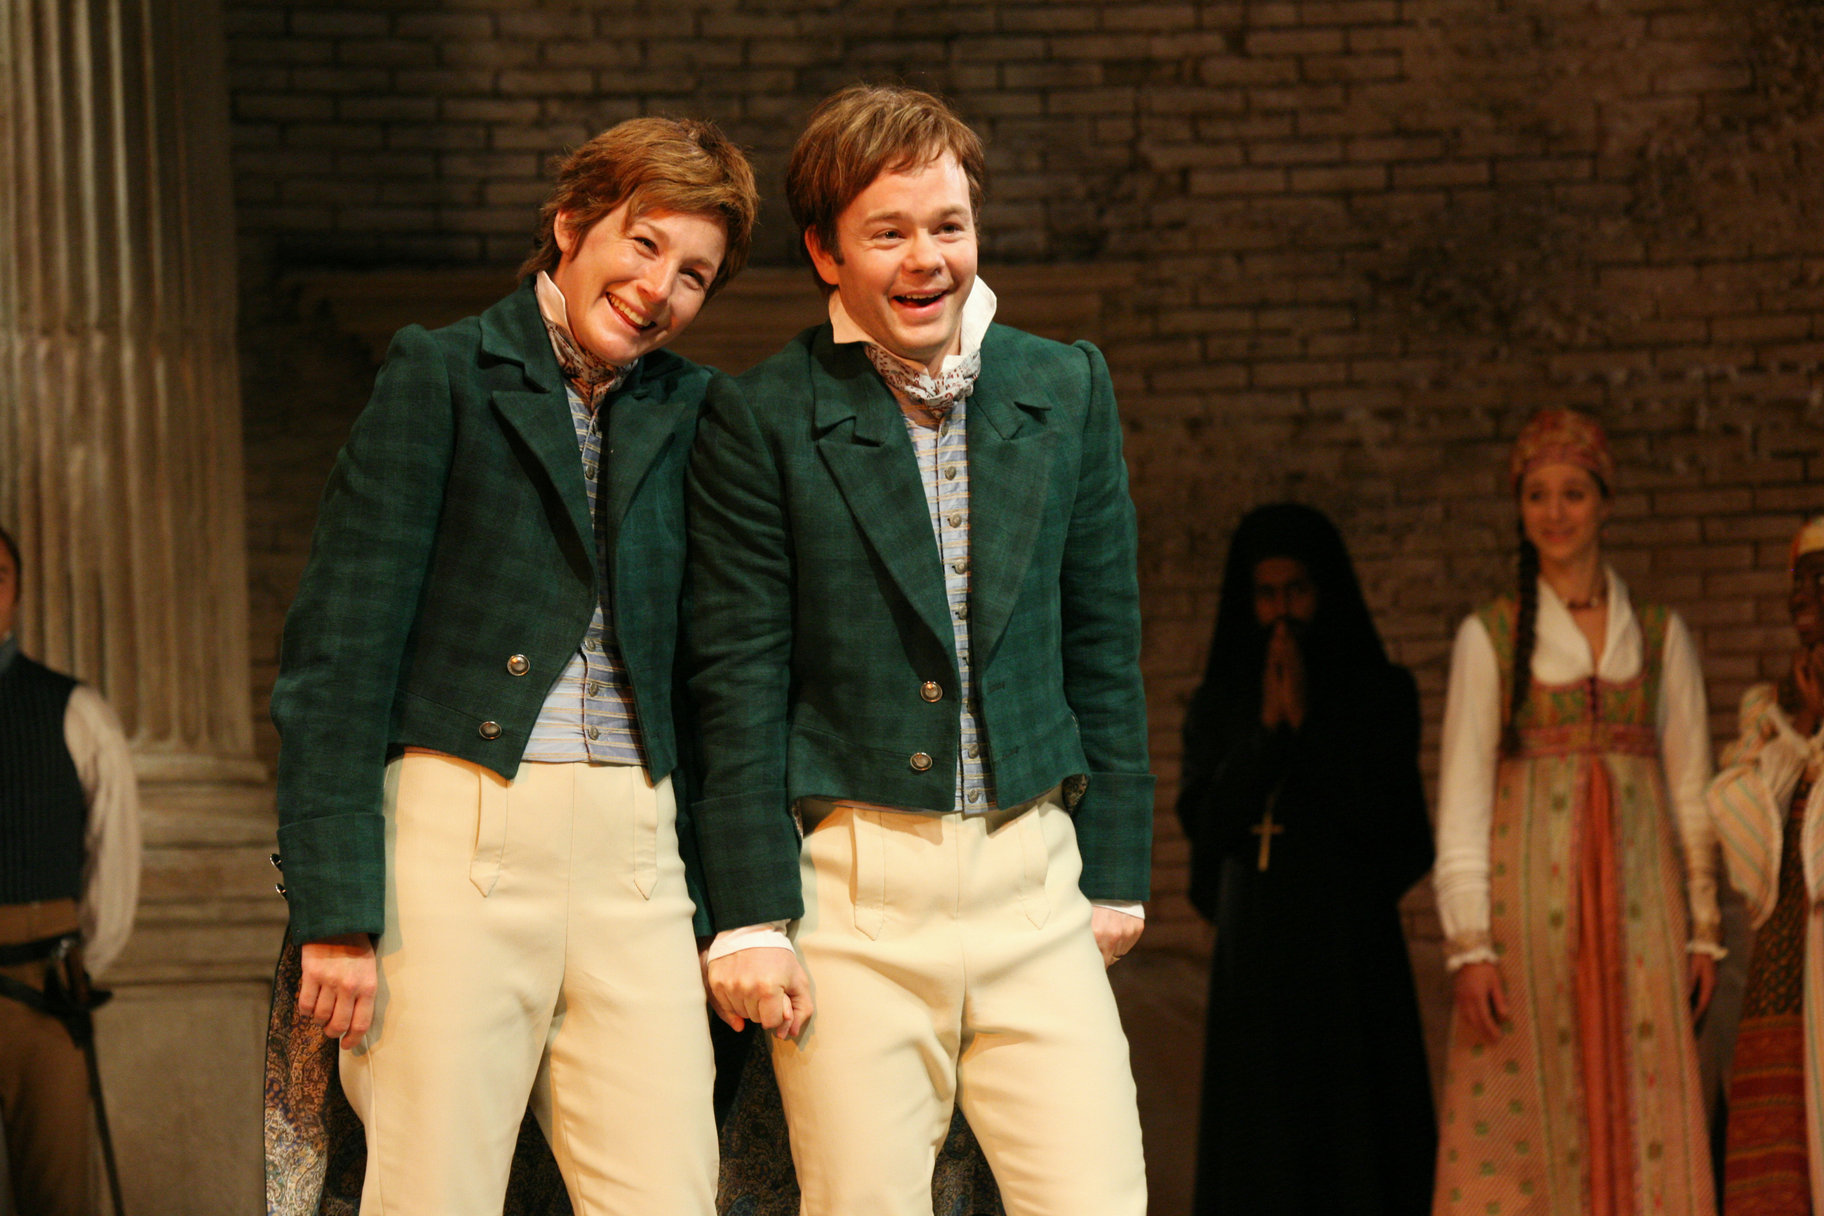 Viola and Sebastian laugh side by side in green jackets and beige trousers in the 2009 production of Twelfth Night.